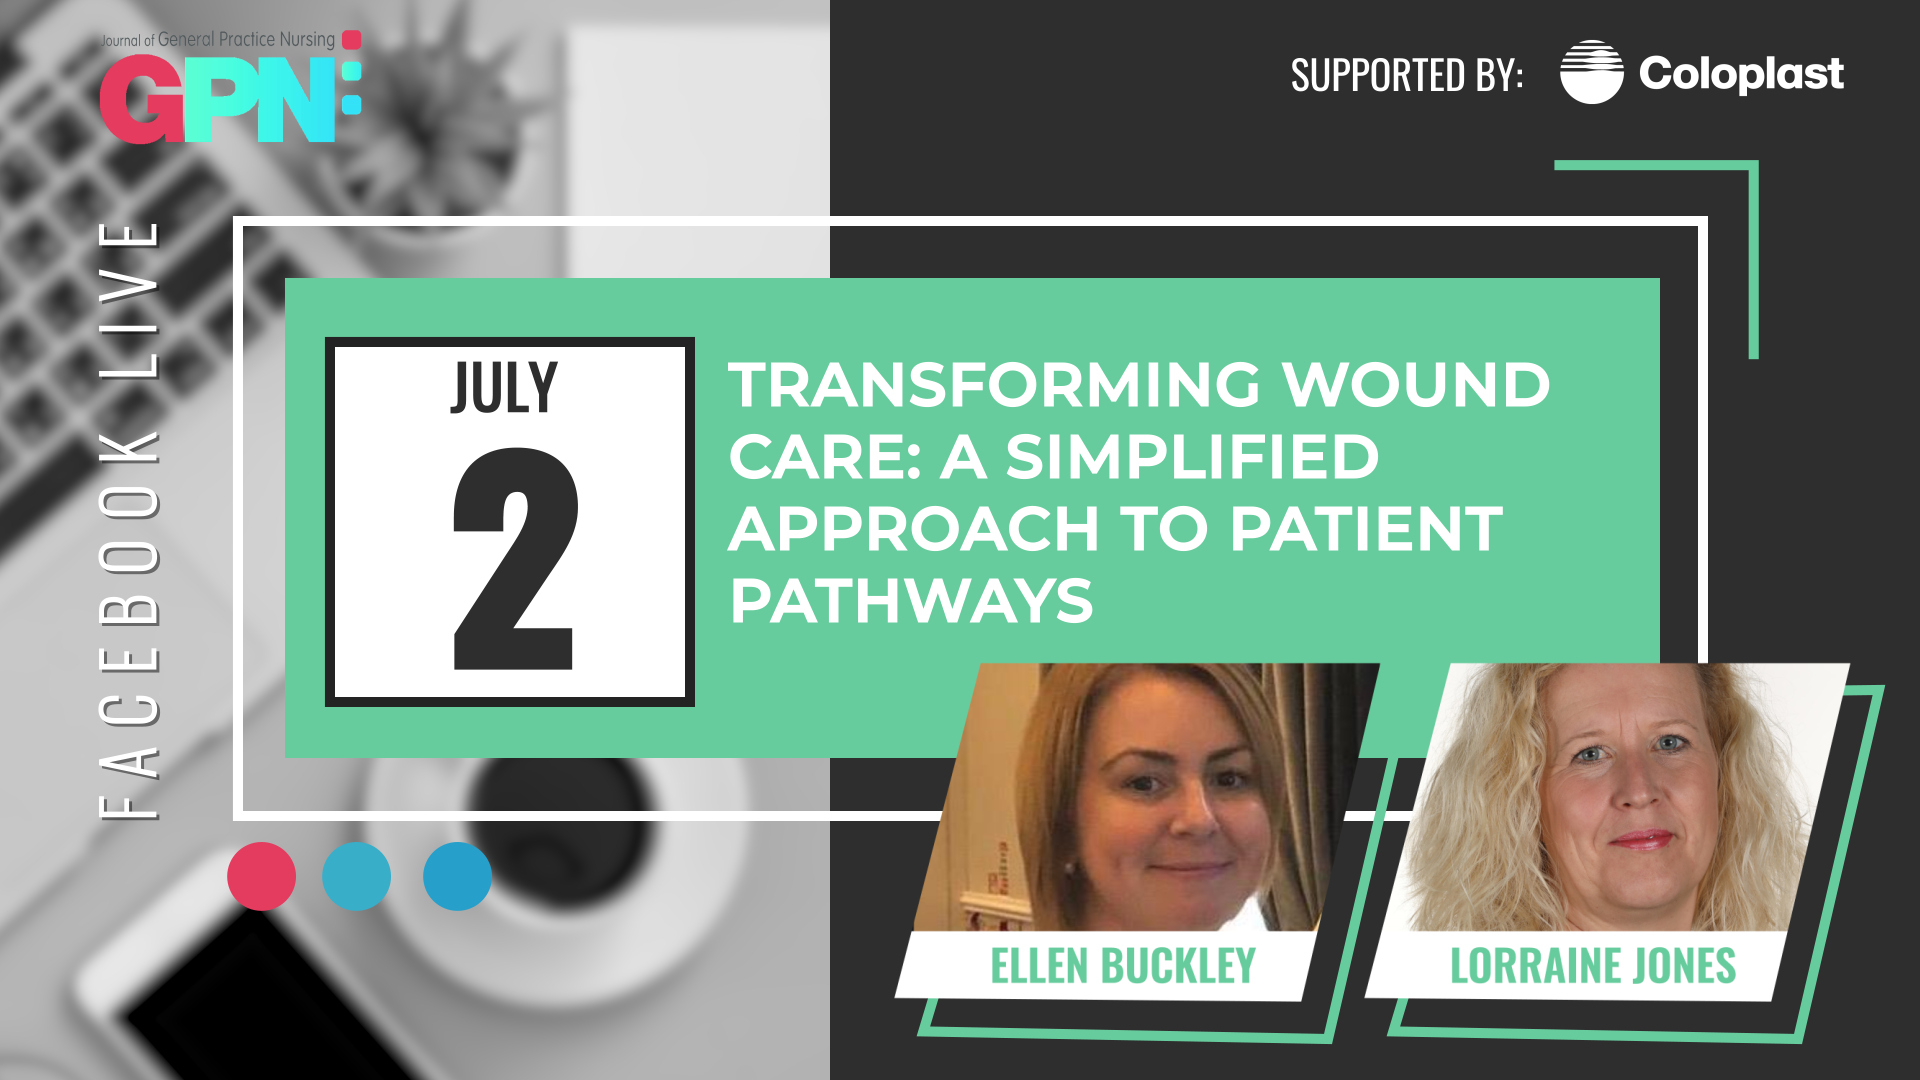 Transforming wound care - A simplified approach to patient pathways